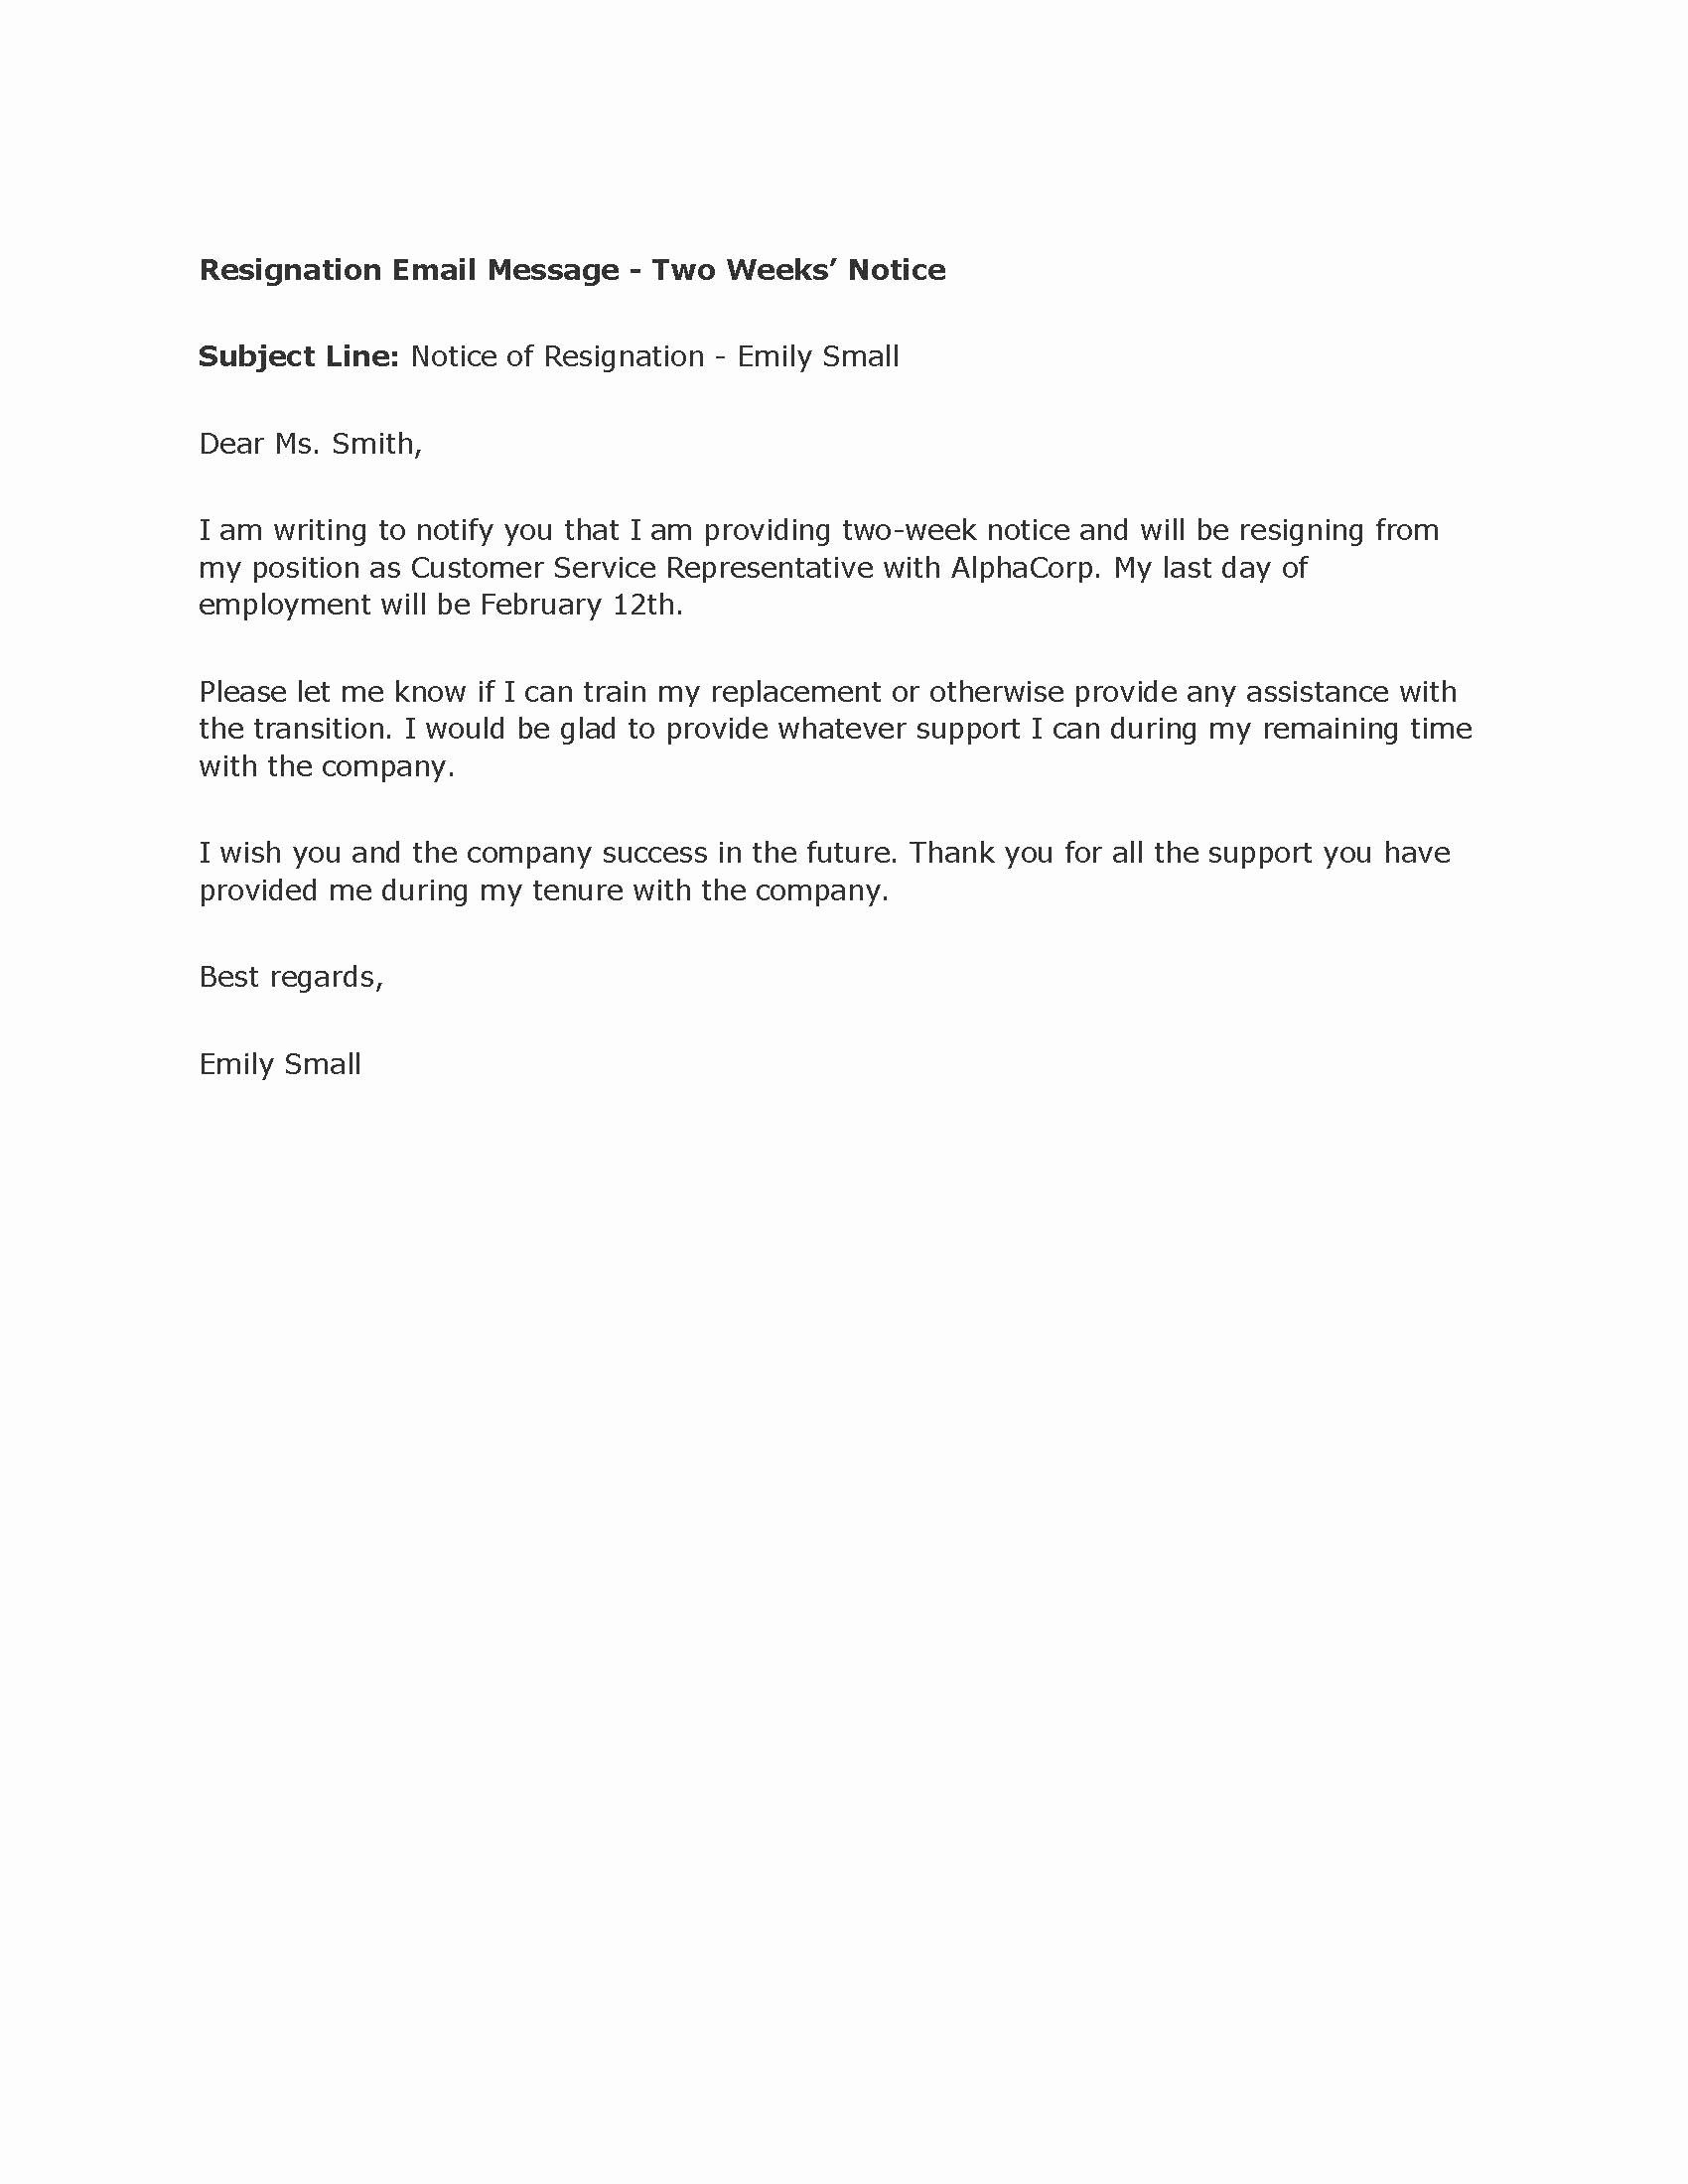 Sample Of Two Weeks Notice Letter Beautiful Professional